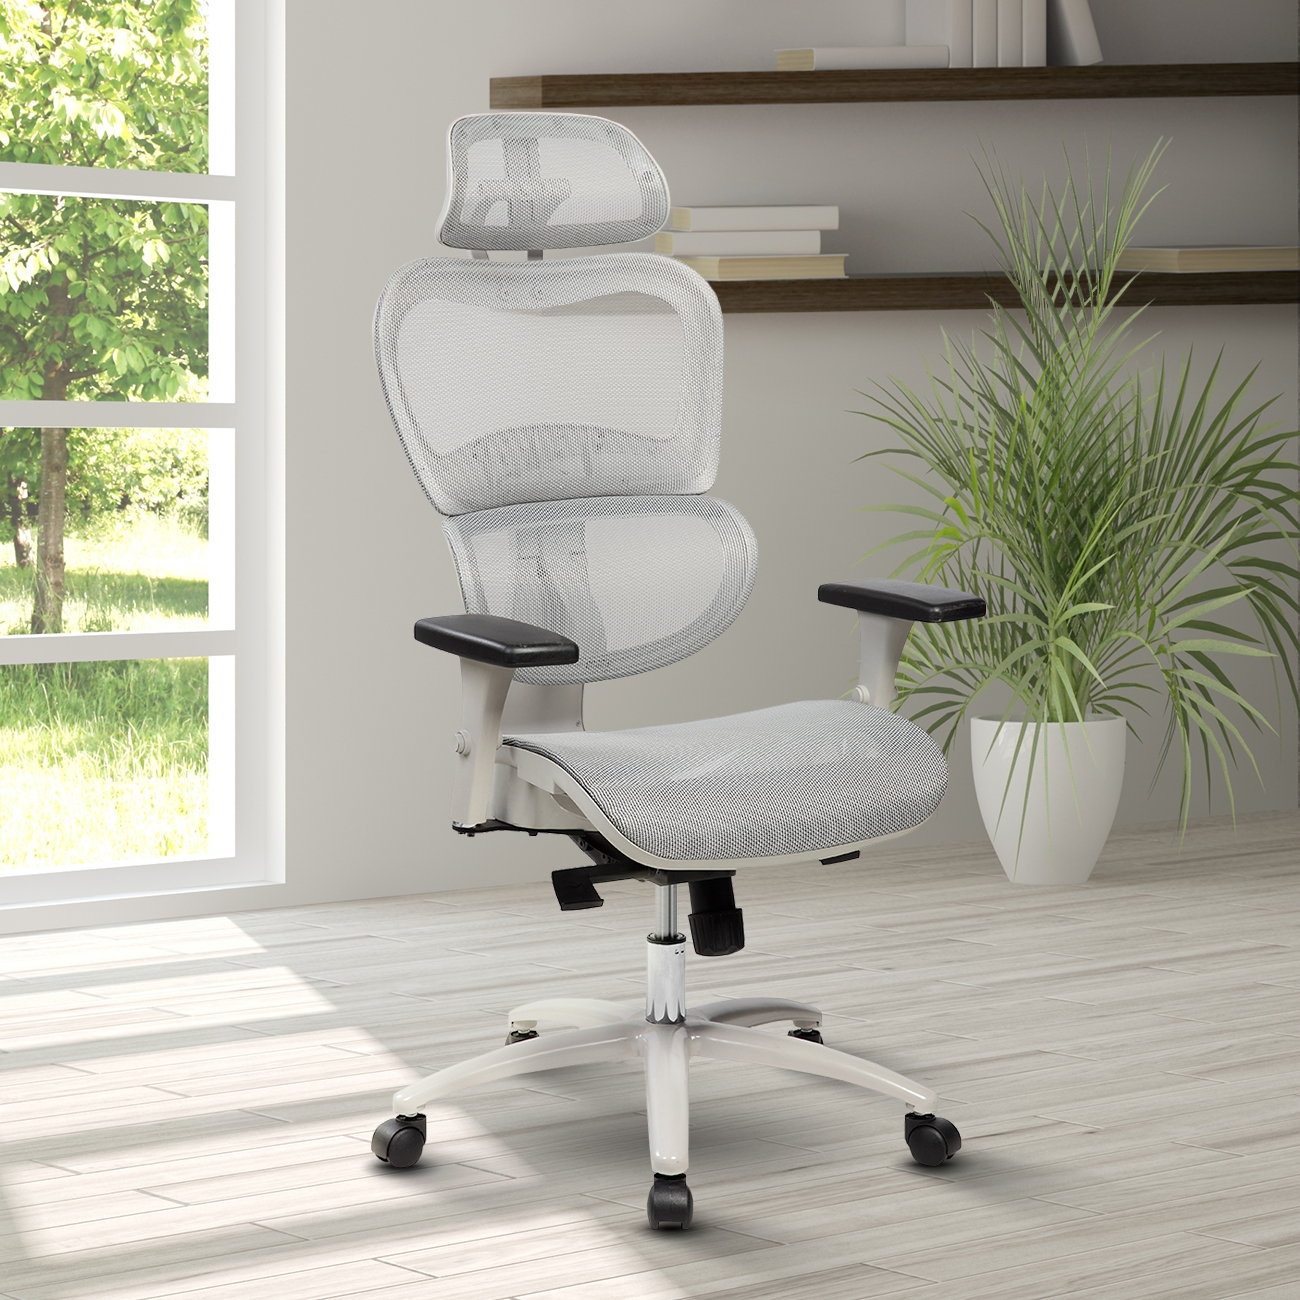 Techni Mobili High Back Mesh Executive Office Chair with Neck Support, Grey (RTA-5004)